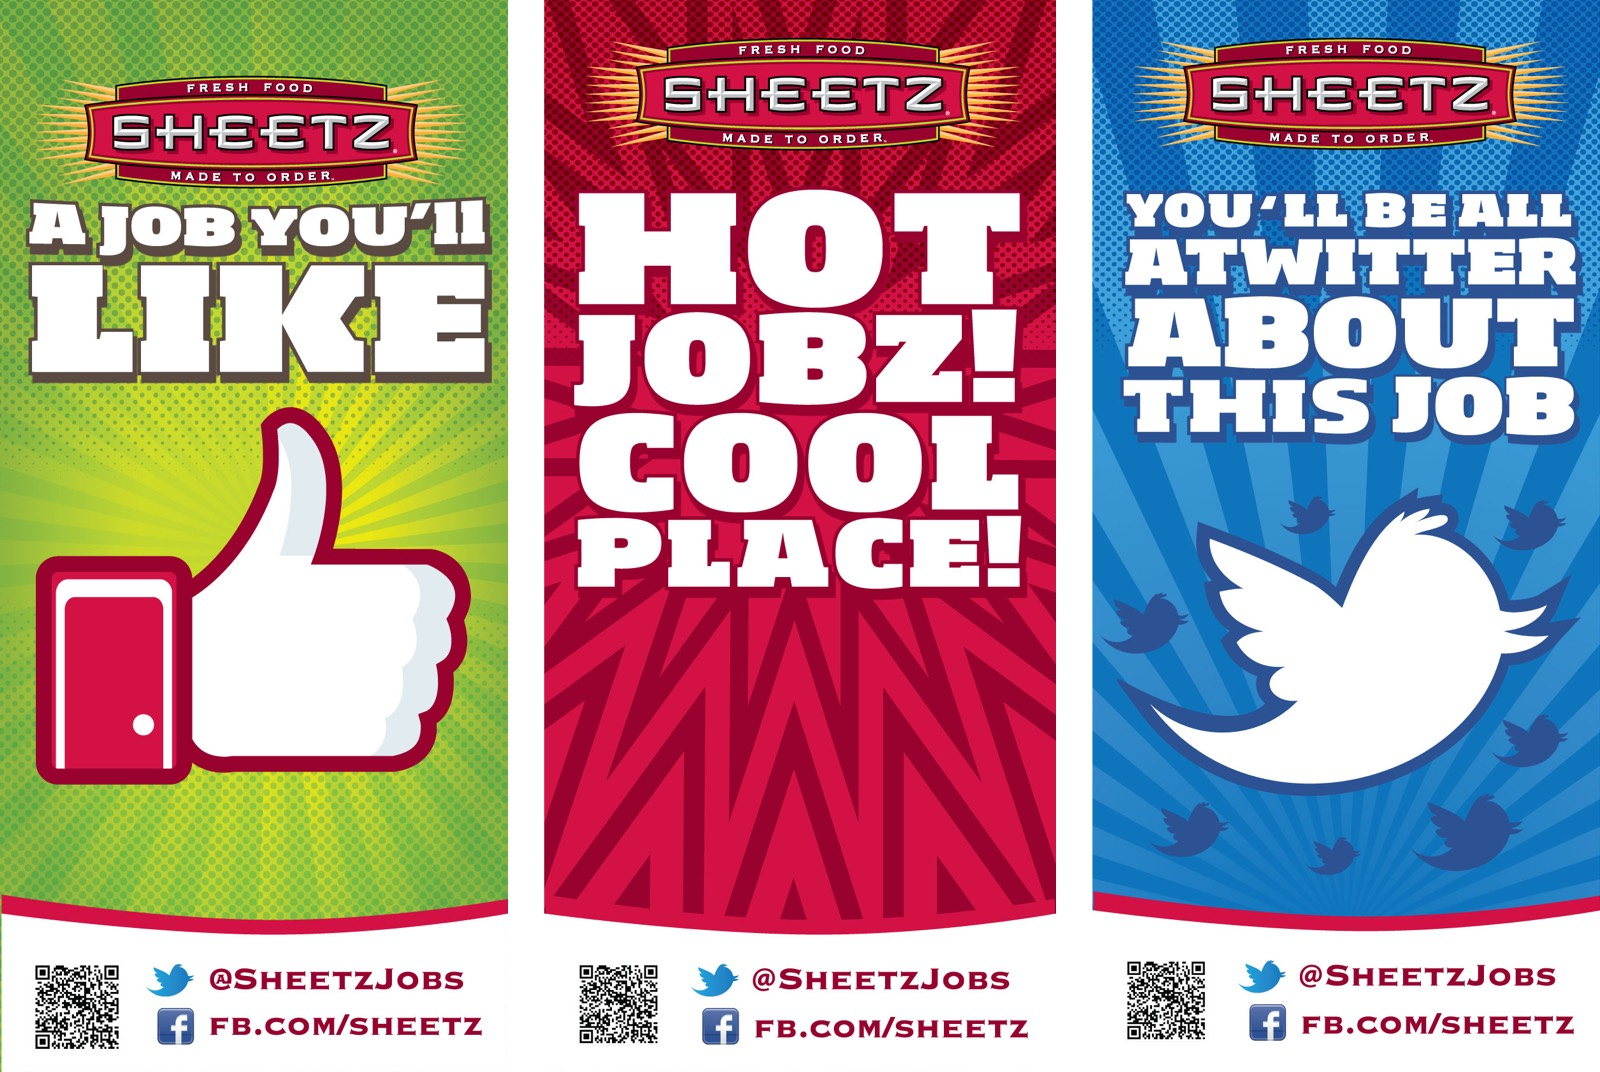 3 banner concepts promoting careers at Sheetz